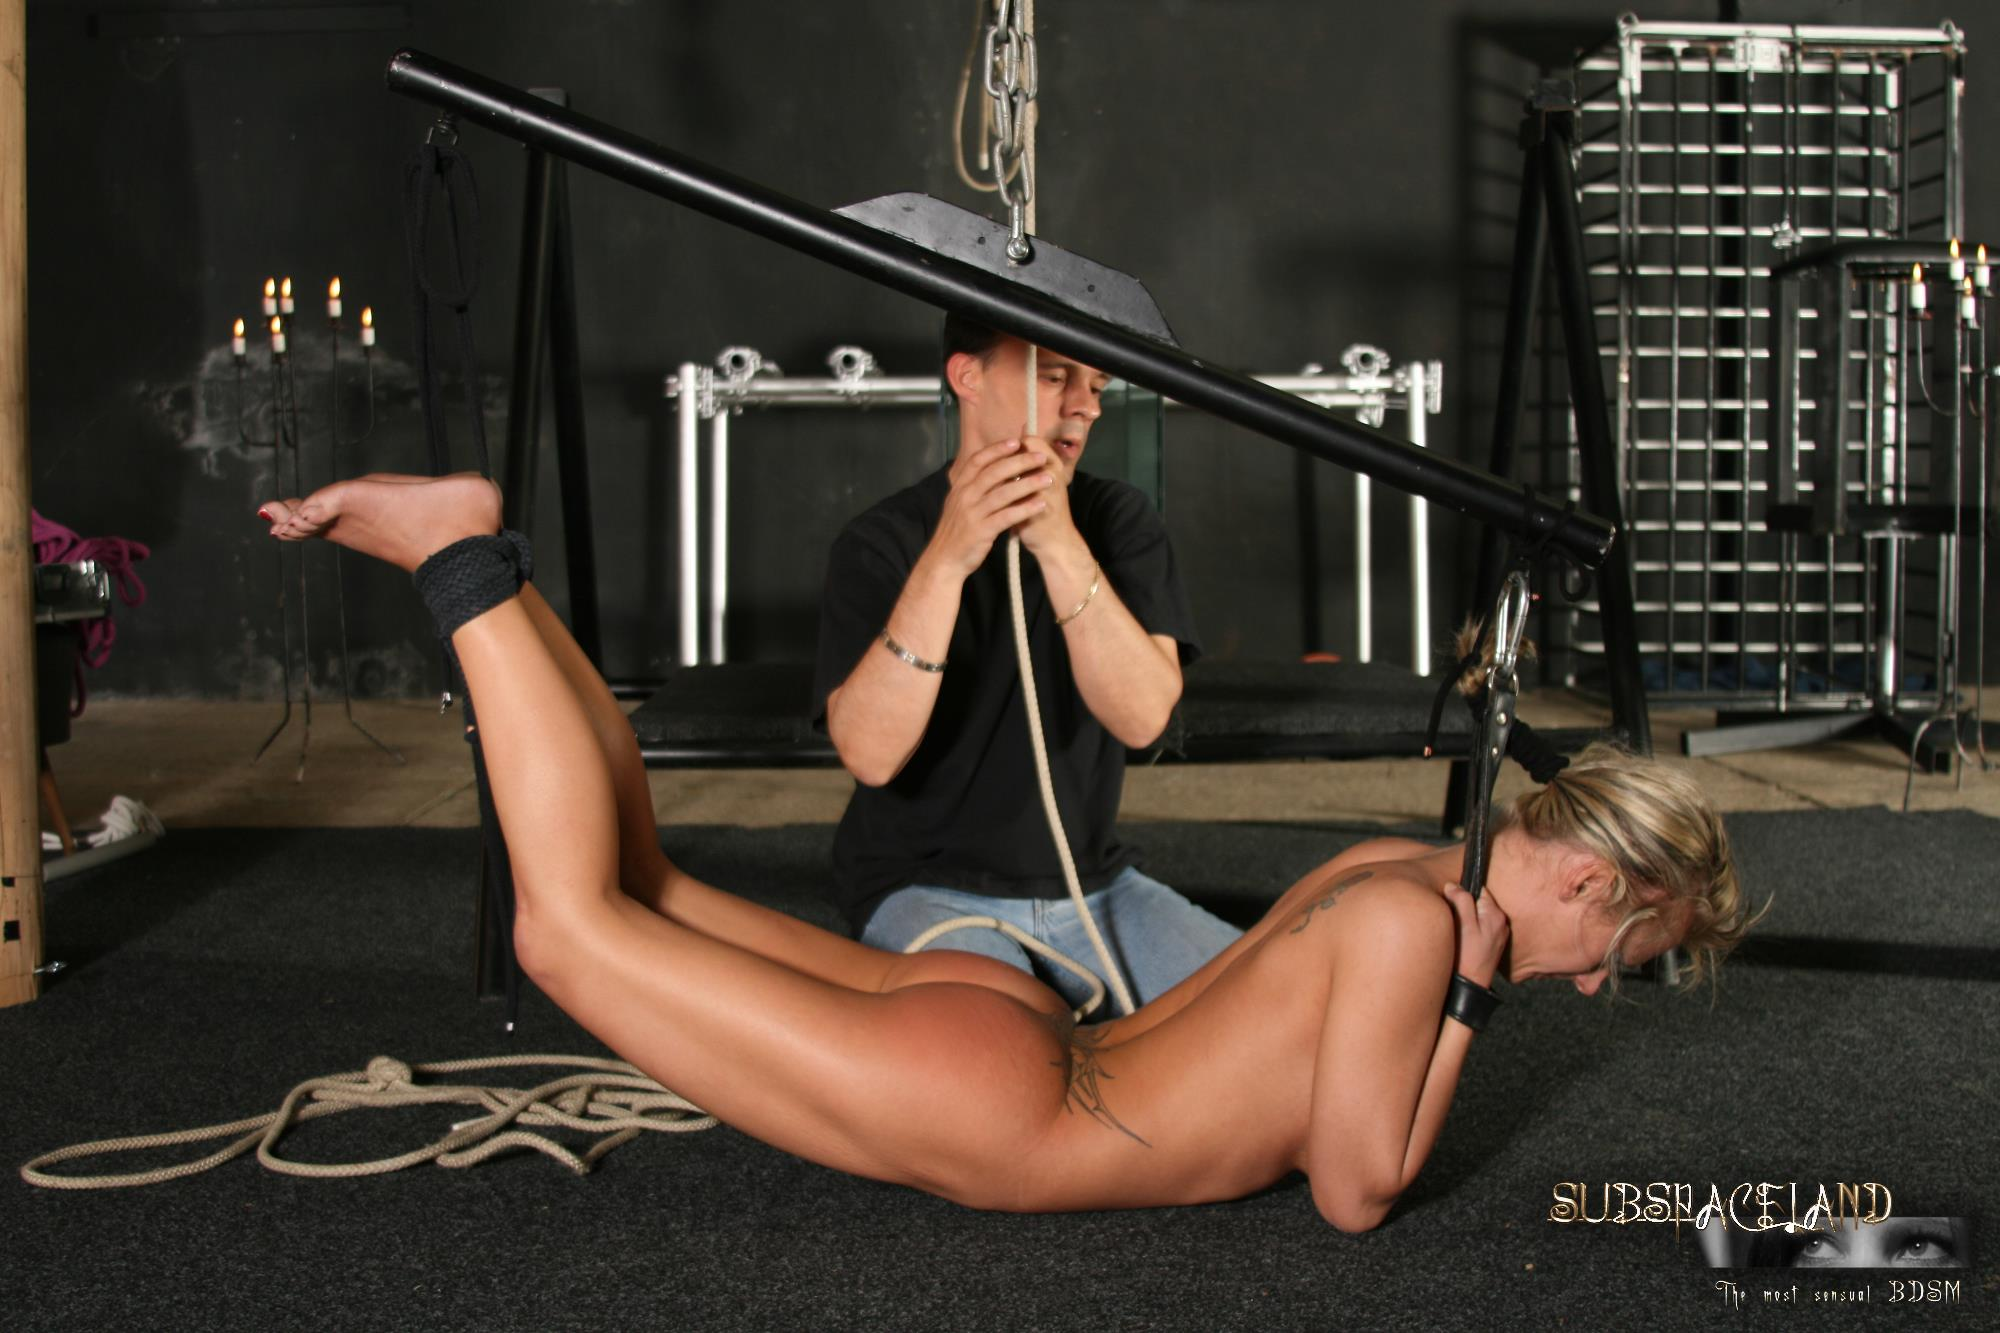 Kinky blonde with nice tits is fucked by muscular farmhand on wooden dock - 4 9